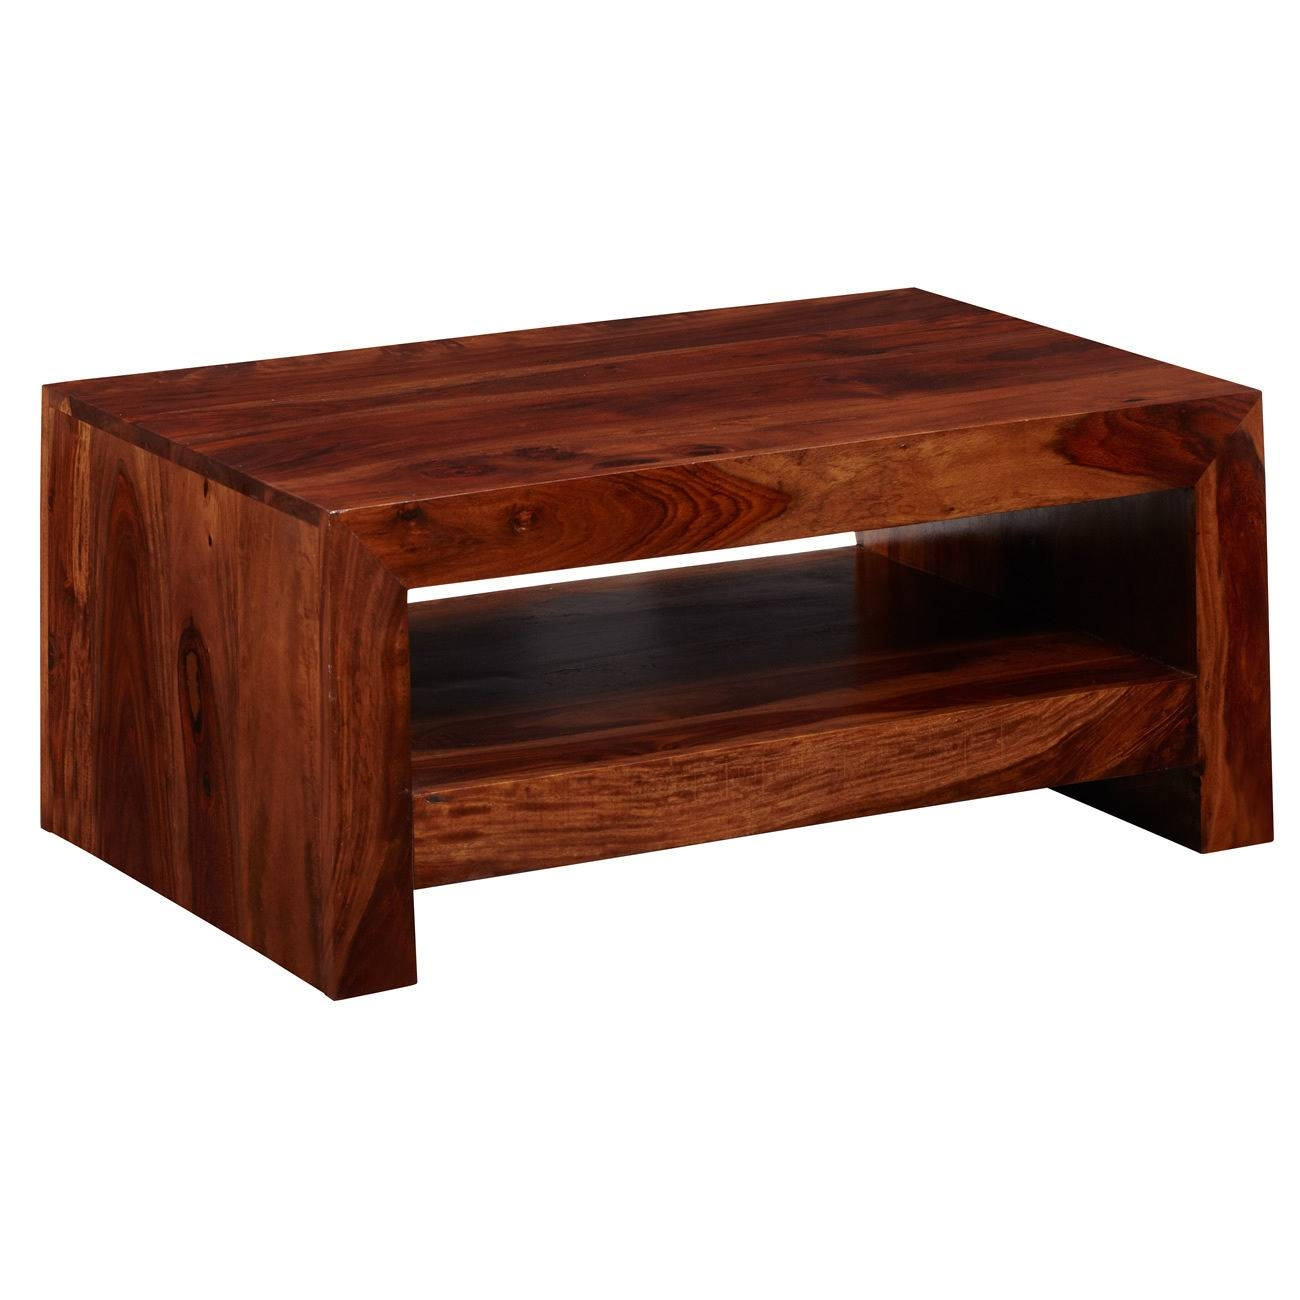 Large Wood Coffee Table Uk - Gallery Image Capudocs within Chunky Rustic Coffee Tables (Image 18 of 30)